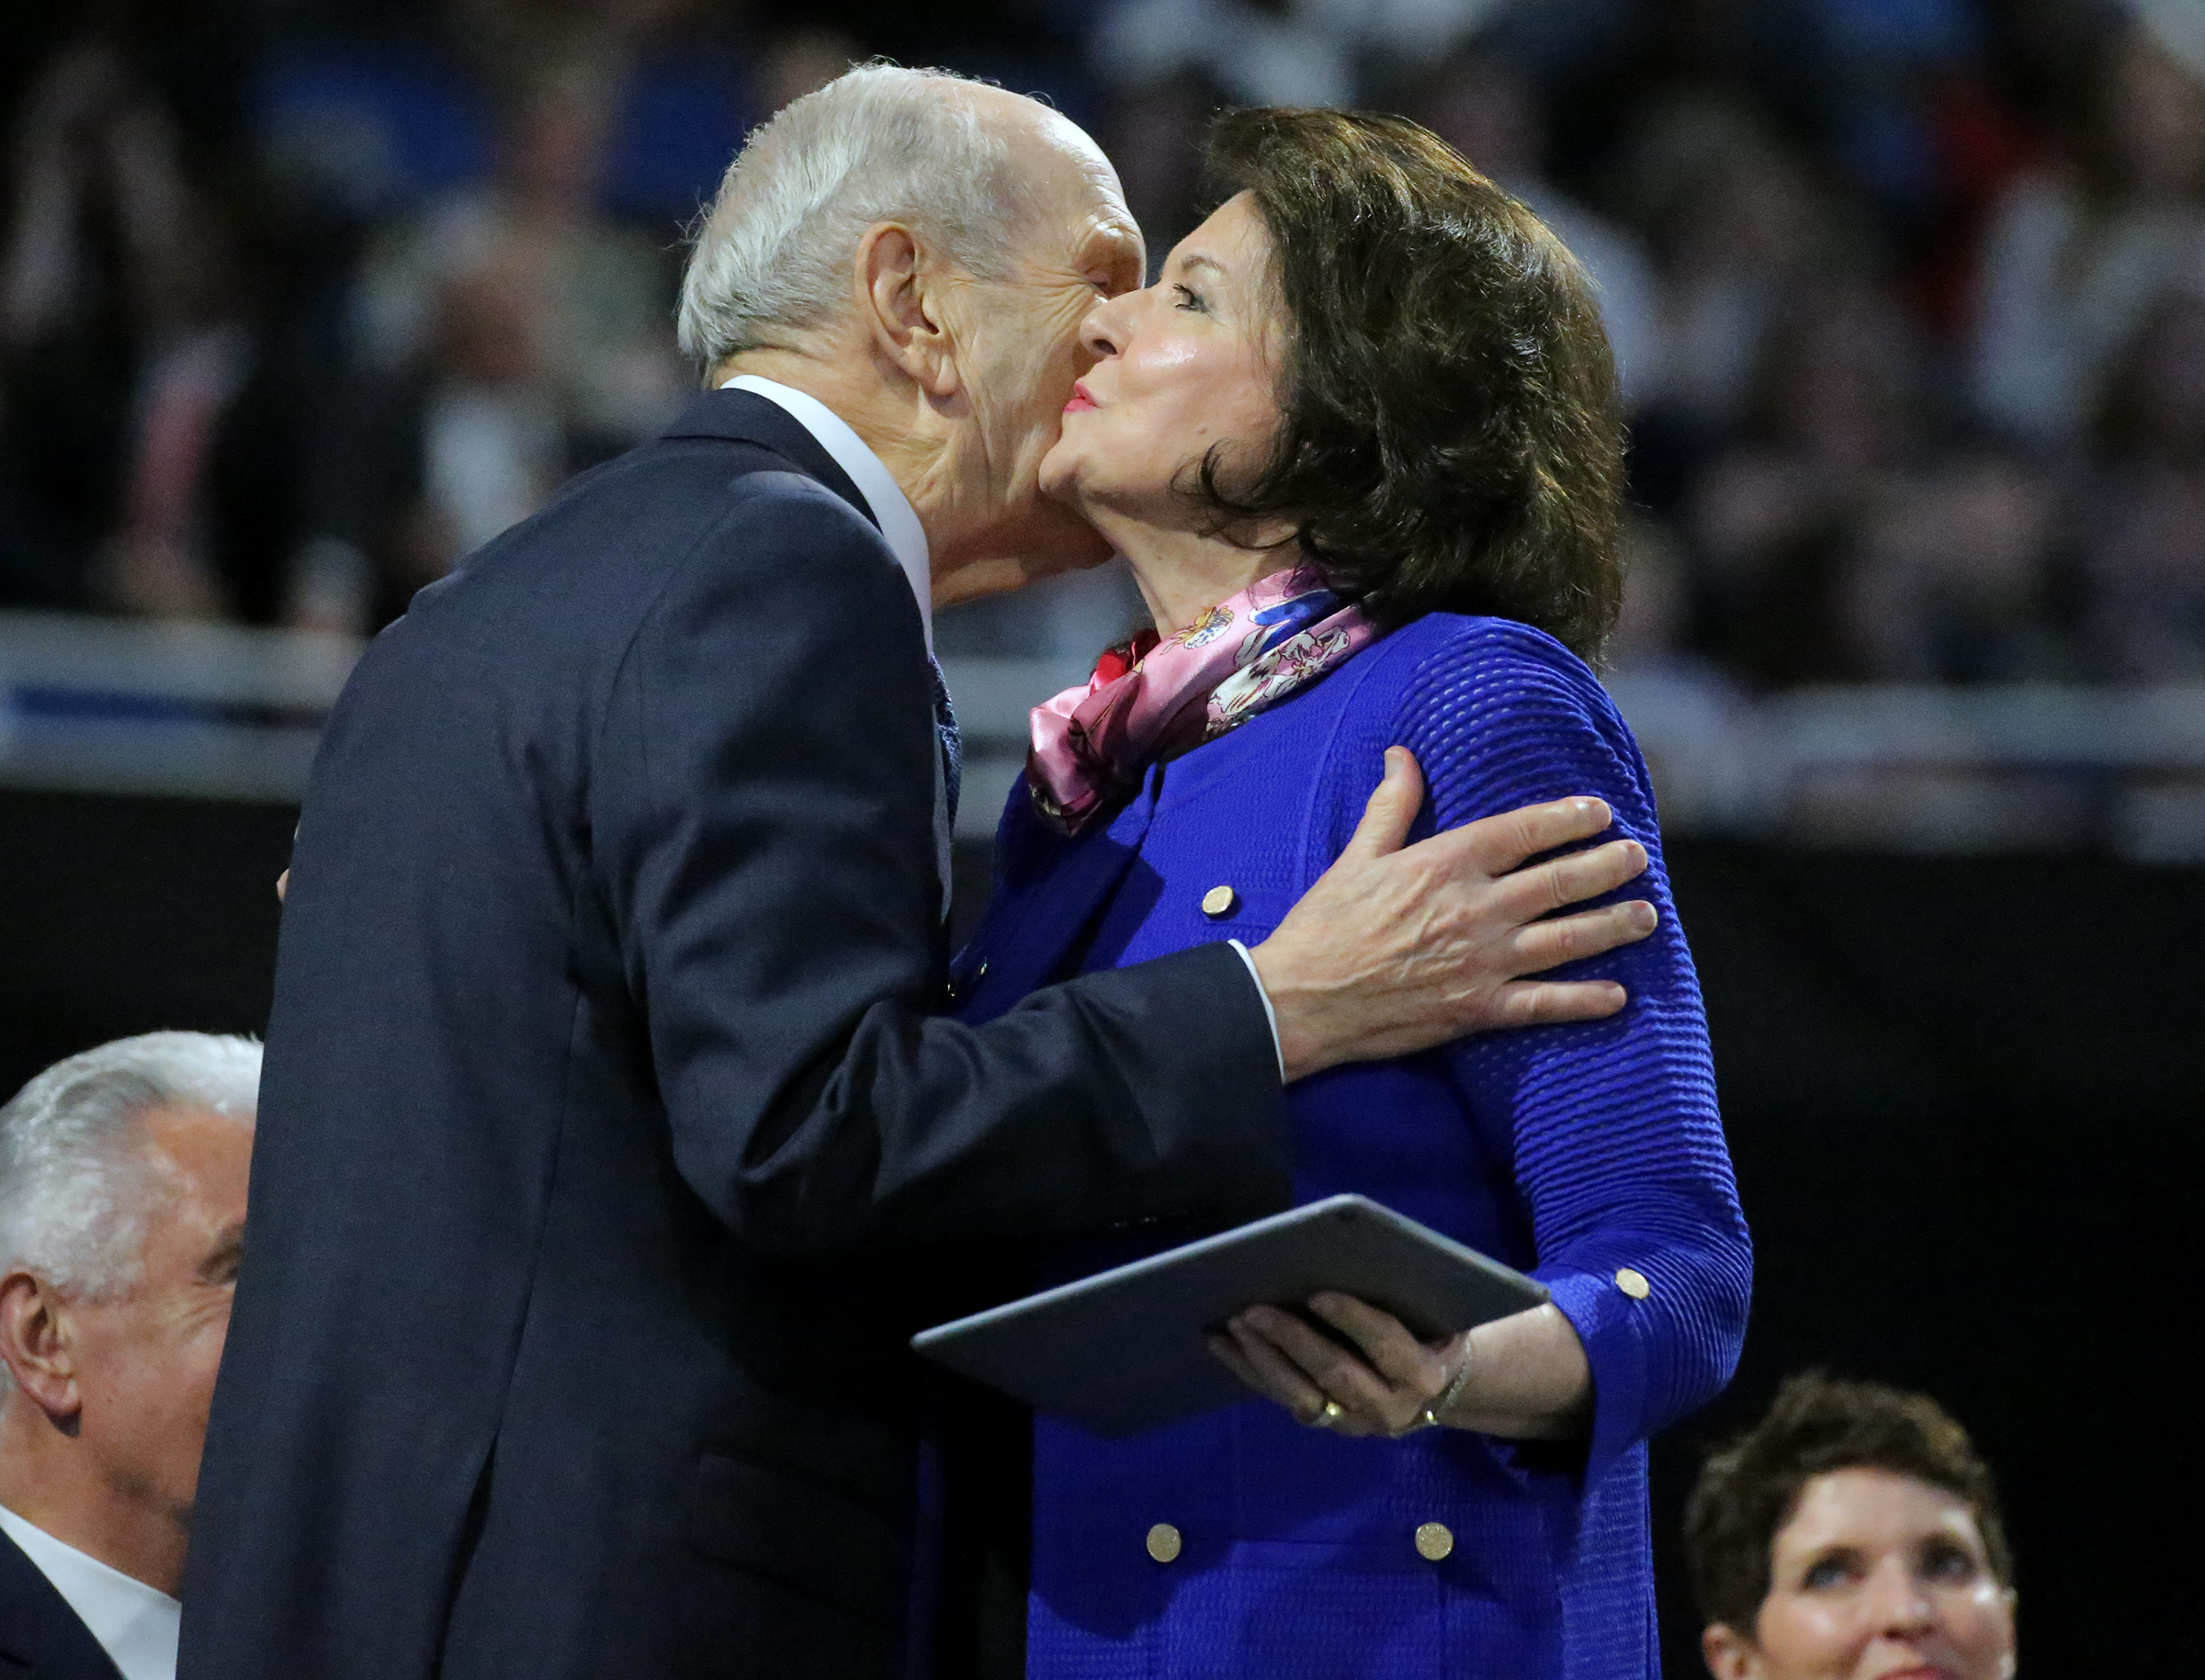 President Russell M. Nelson s kisses his wife, Sister Wendy Nelson, on the cheek after her devotional message at the Amway Center in Orlando, Florida, on Sunday, June 9, 2019.